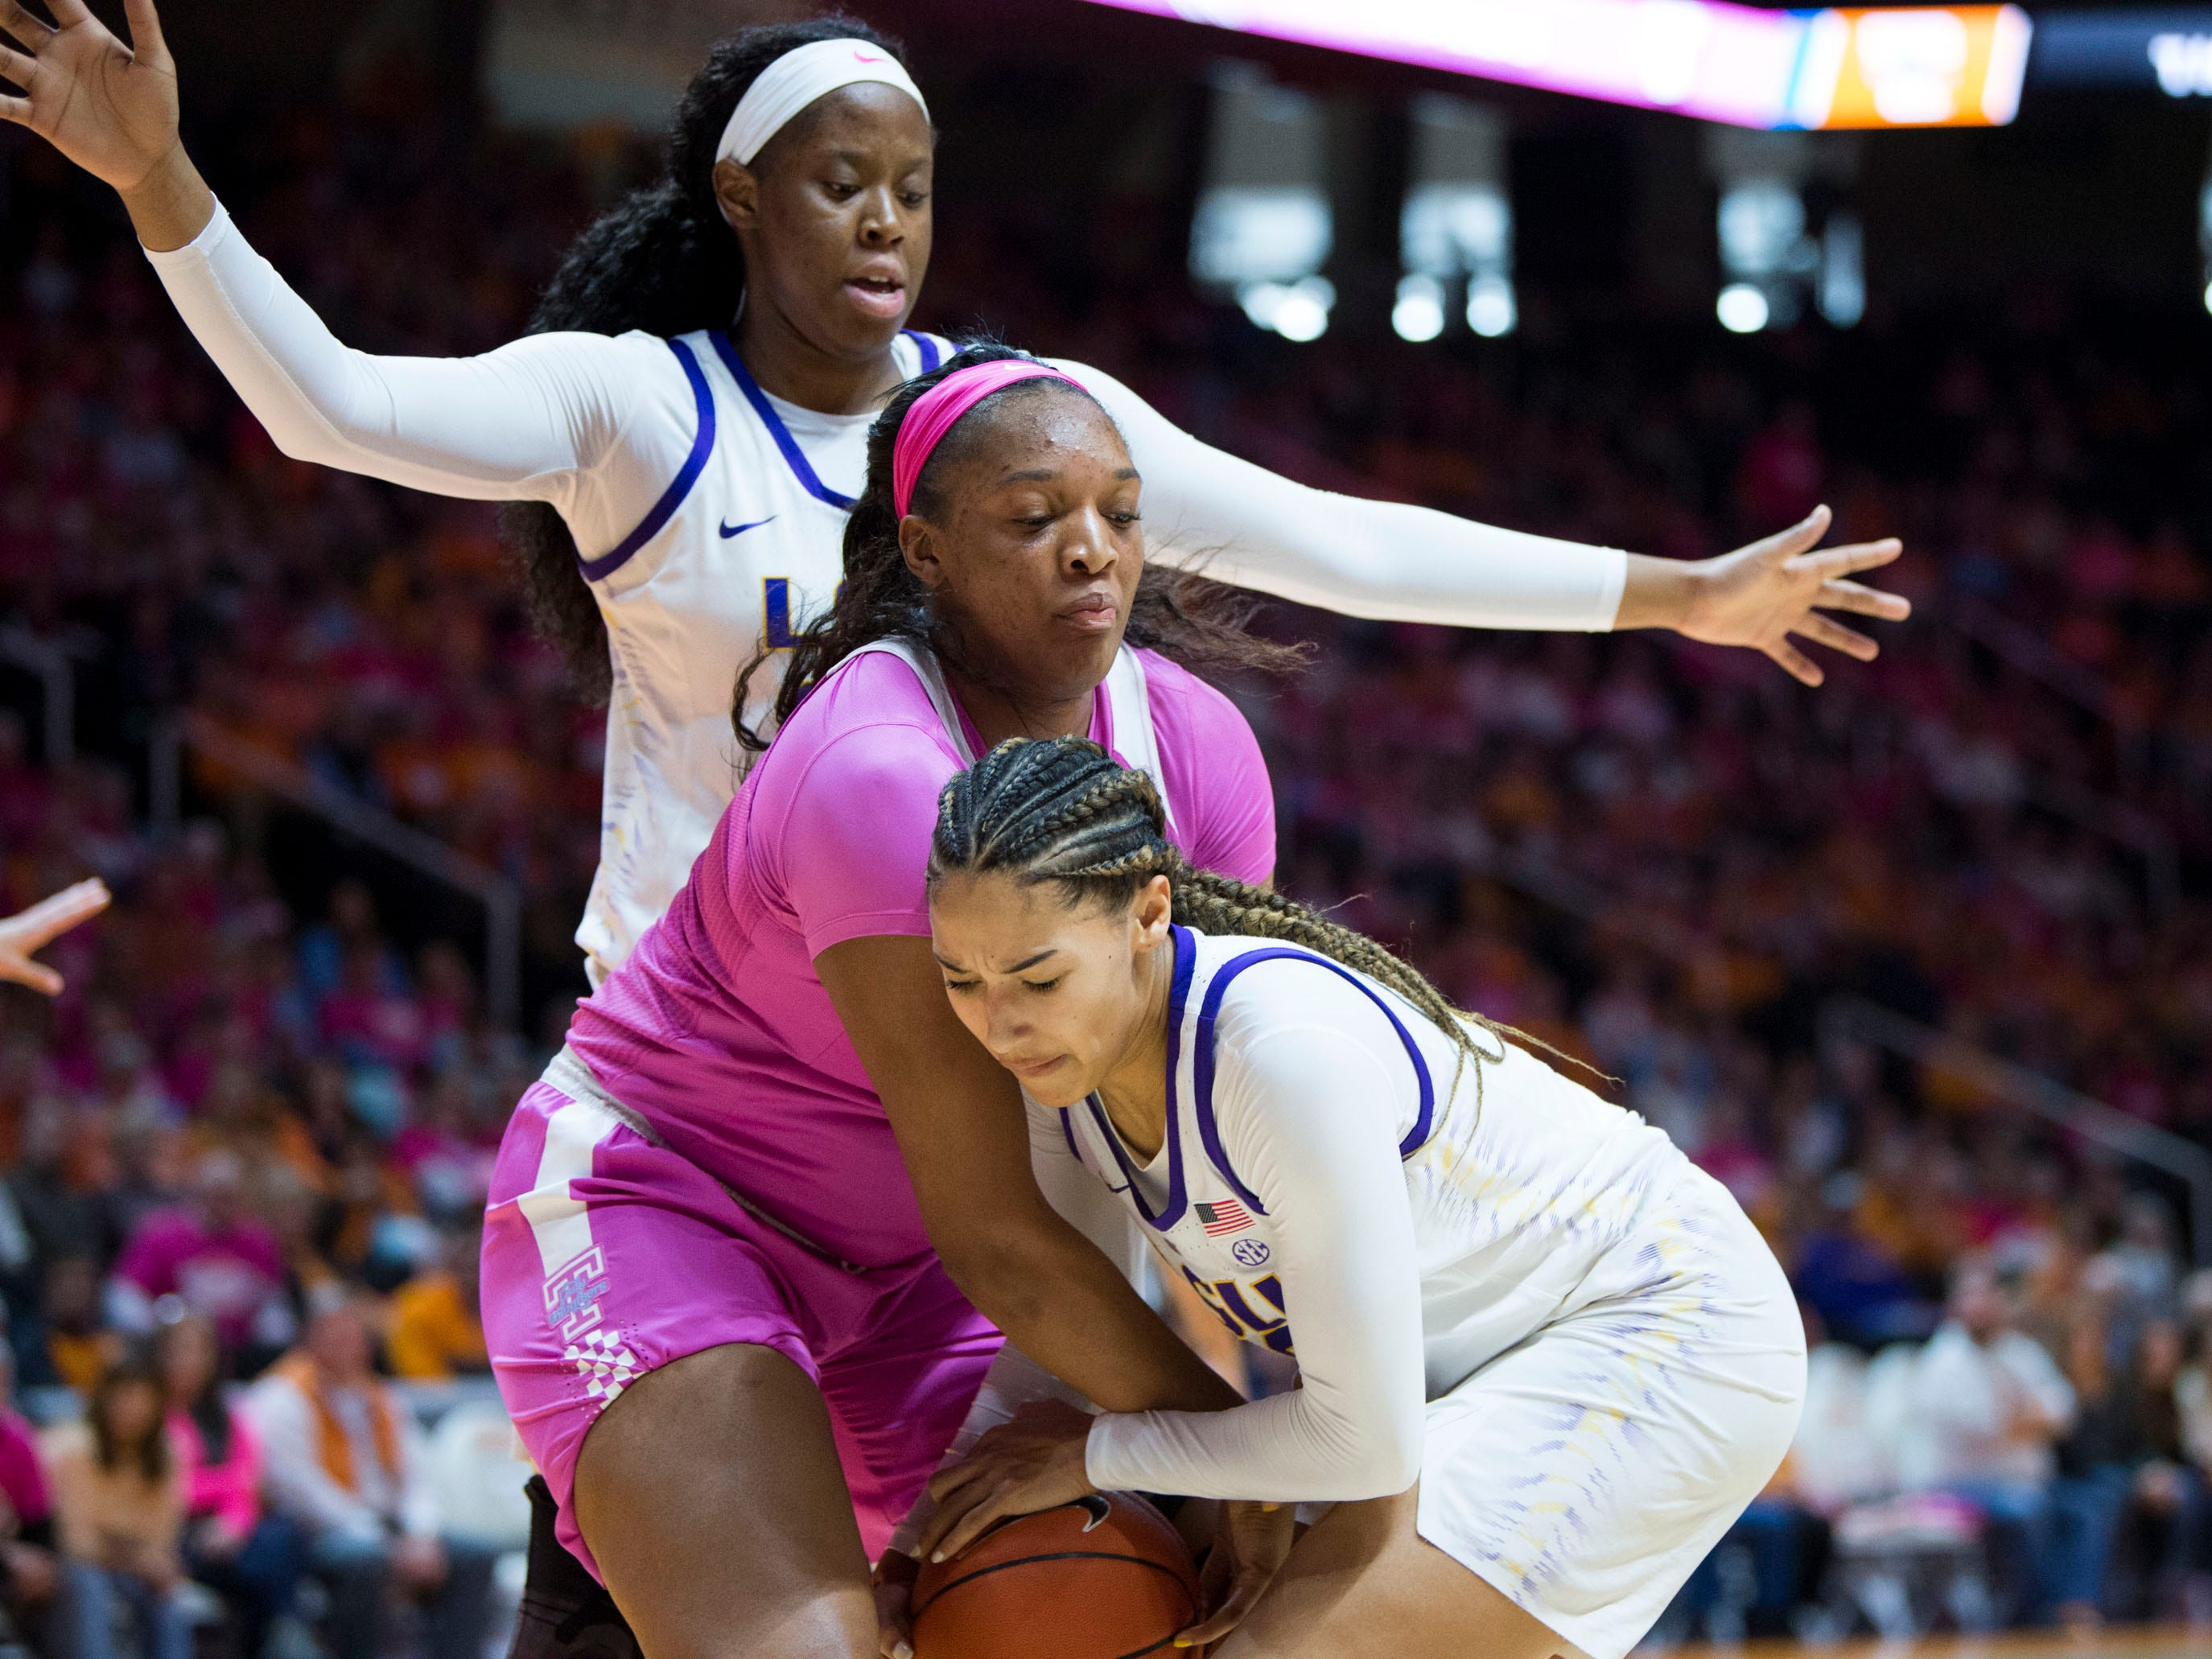 Tennessee's Kasiyahna Kushkituah (11) and LSU's Mercedes Brooks (12) try to gain control of the ball on Sunday, January 27, 2019.